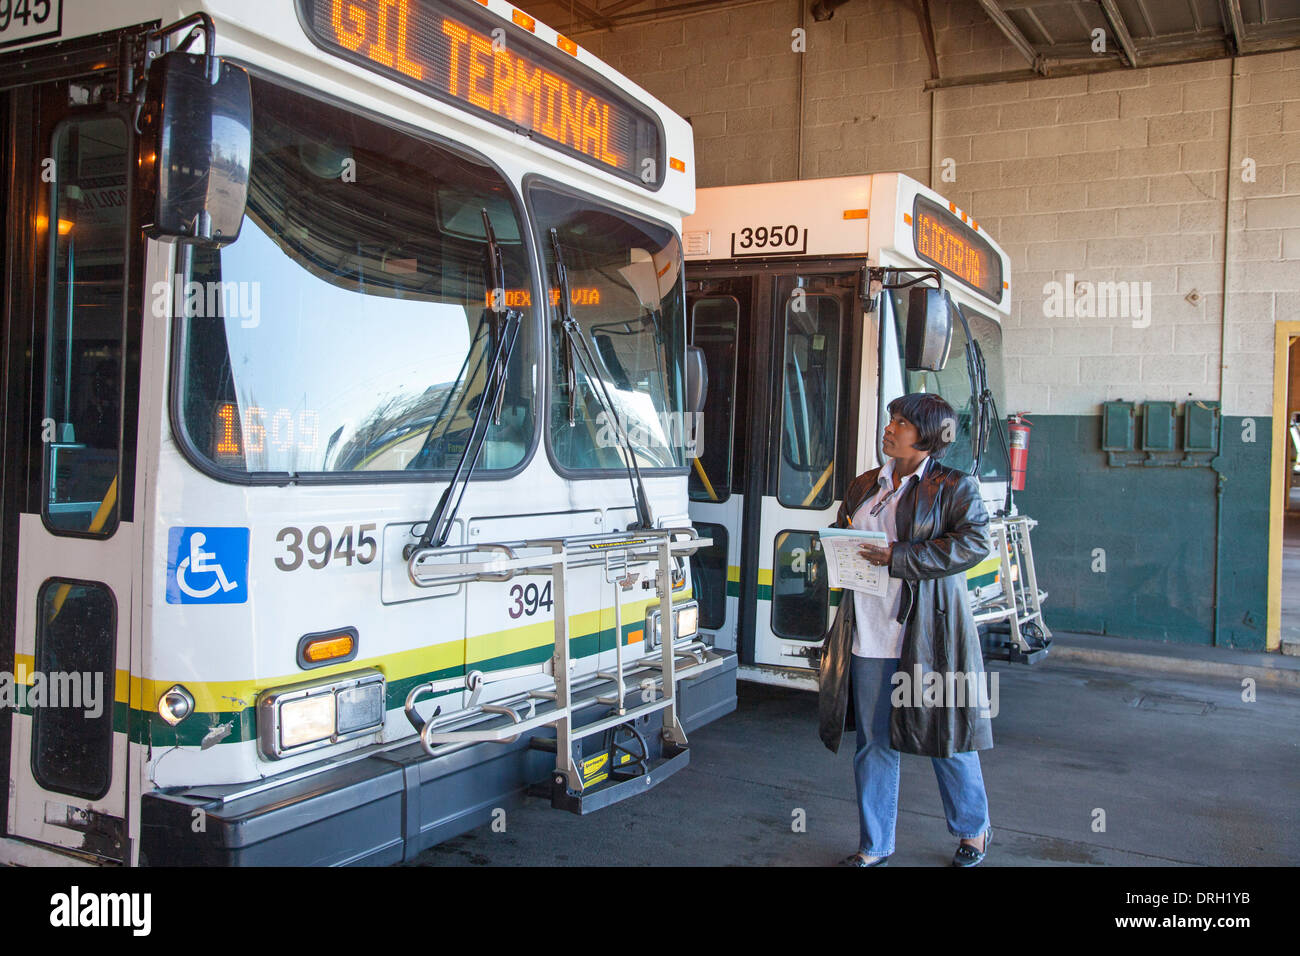 A worker checks on the condition of city buses at a Detroit bus terminal. - Stock Image